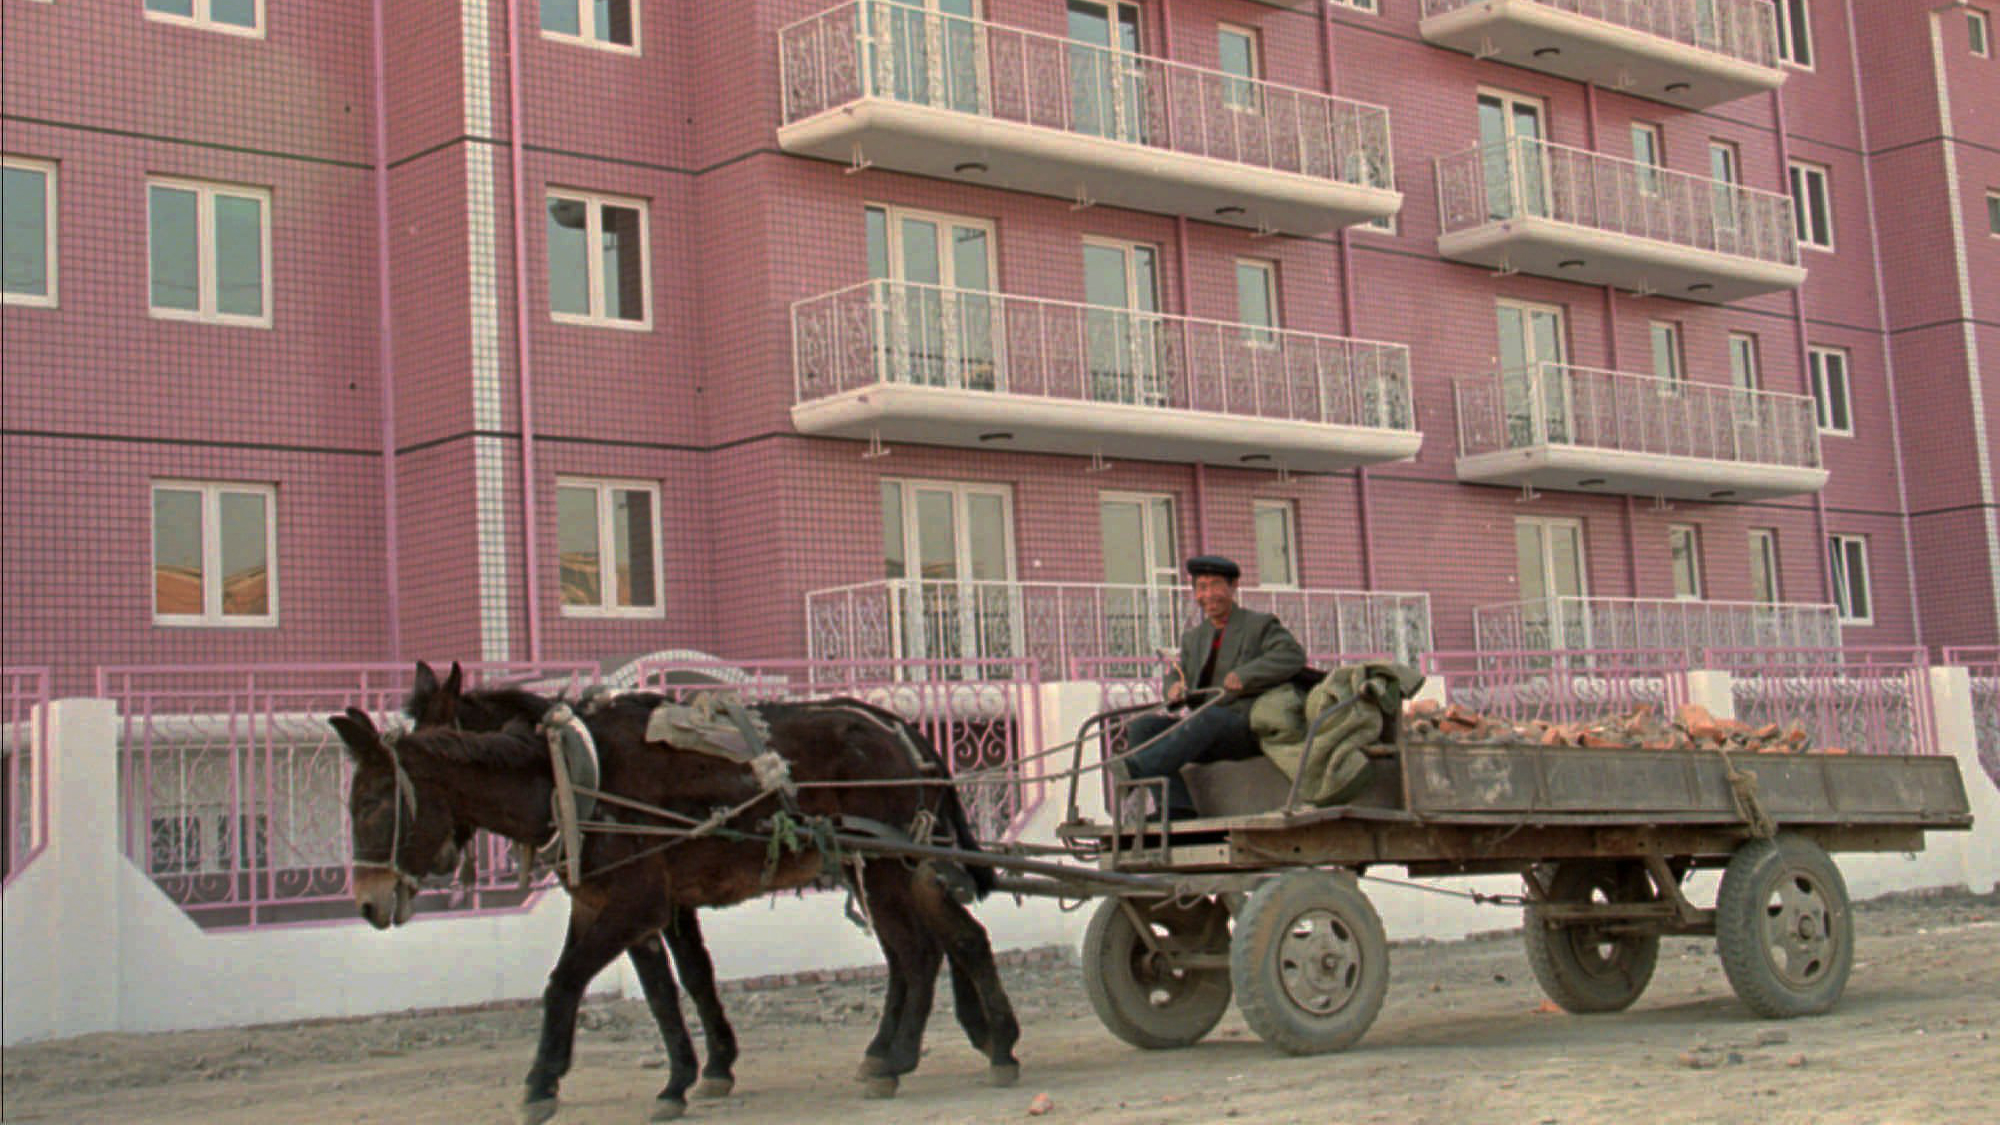 A donkey-wagon carries the rubble past a modern apartment building under construction in Beijijg Thursday, Dec. 21, 1995. Construction for hotels and apartment buildings are booming in China. (AP Photos/Sadayuki Mikami